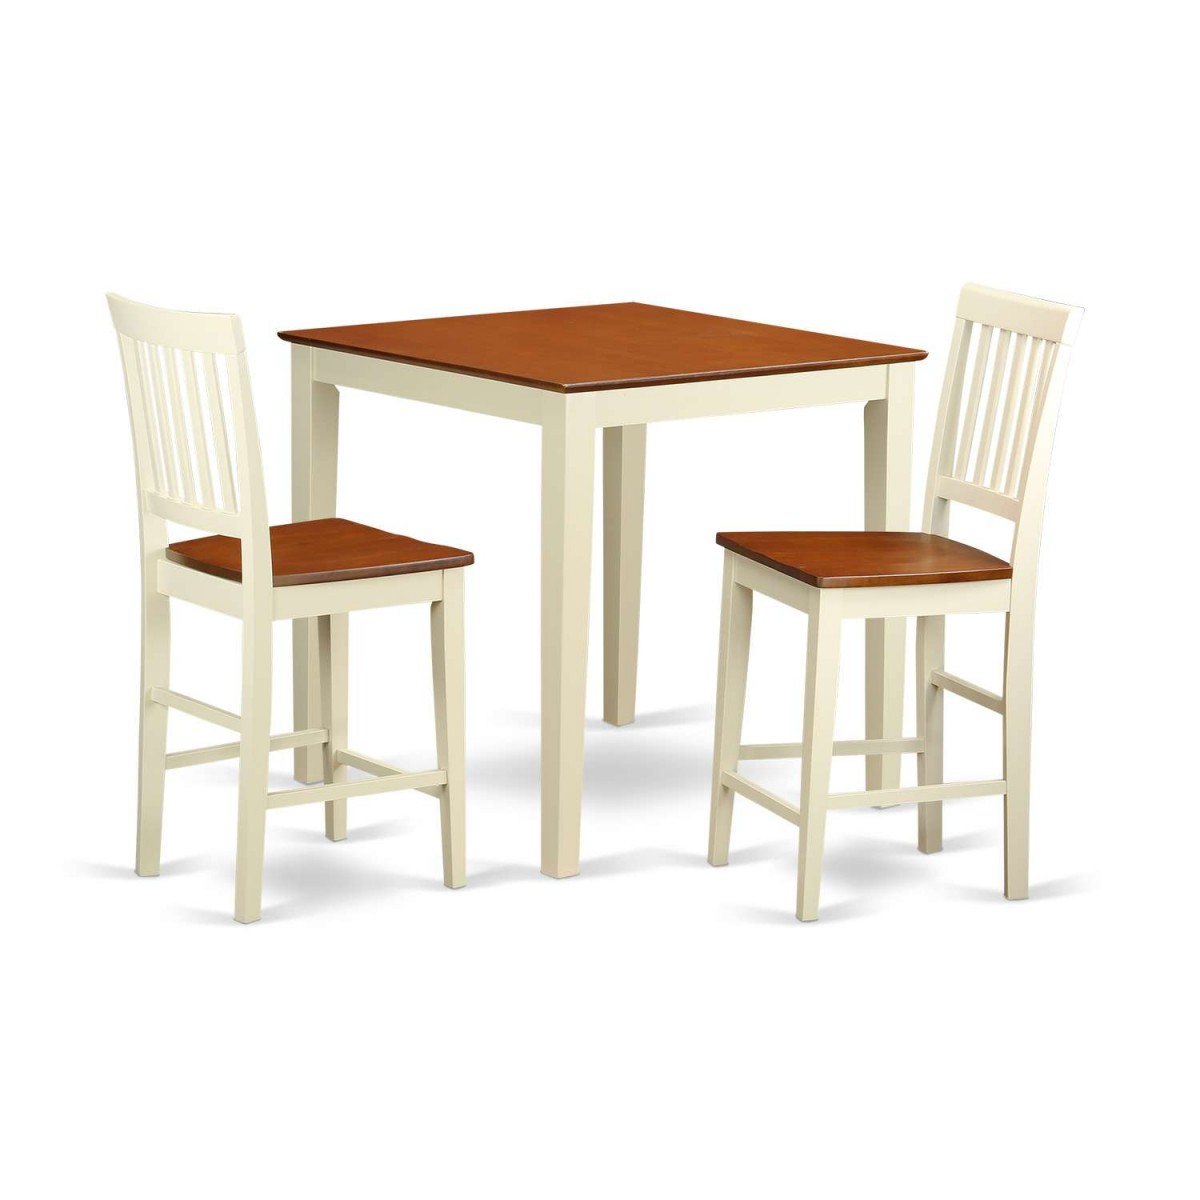 Cheap Pub Table And Chairs: East West Furniture Vernon 3 Piece Pub Table Set